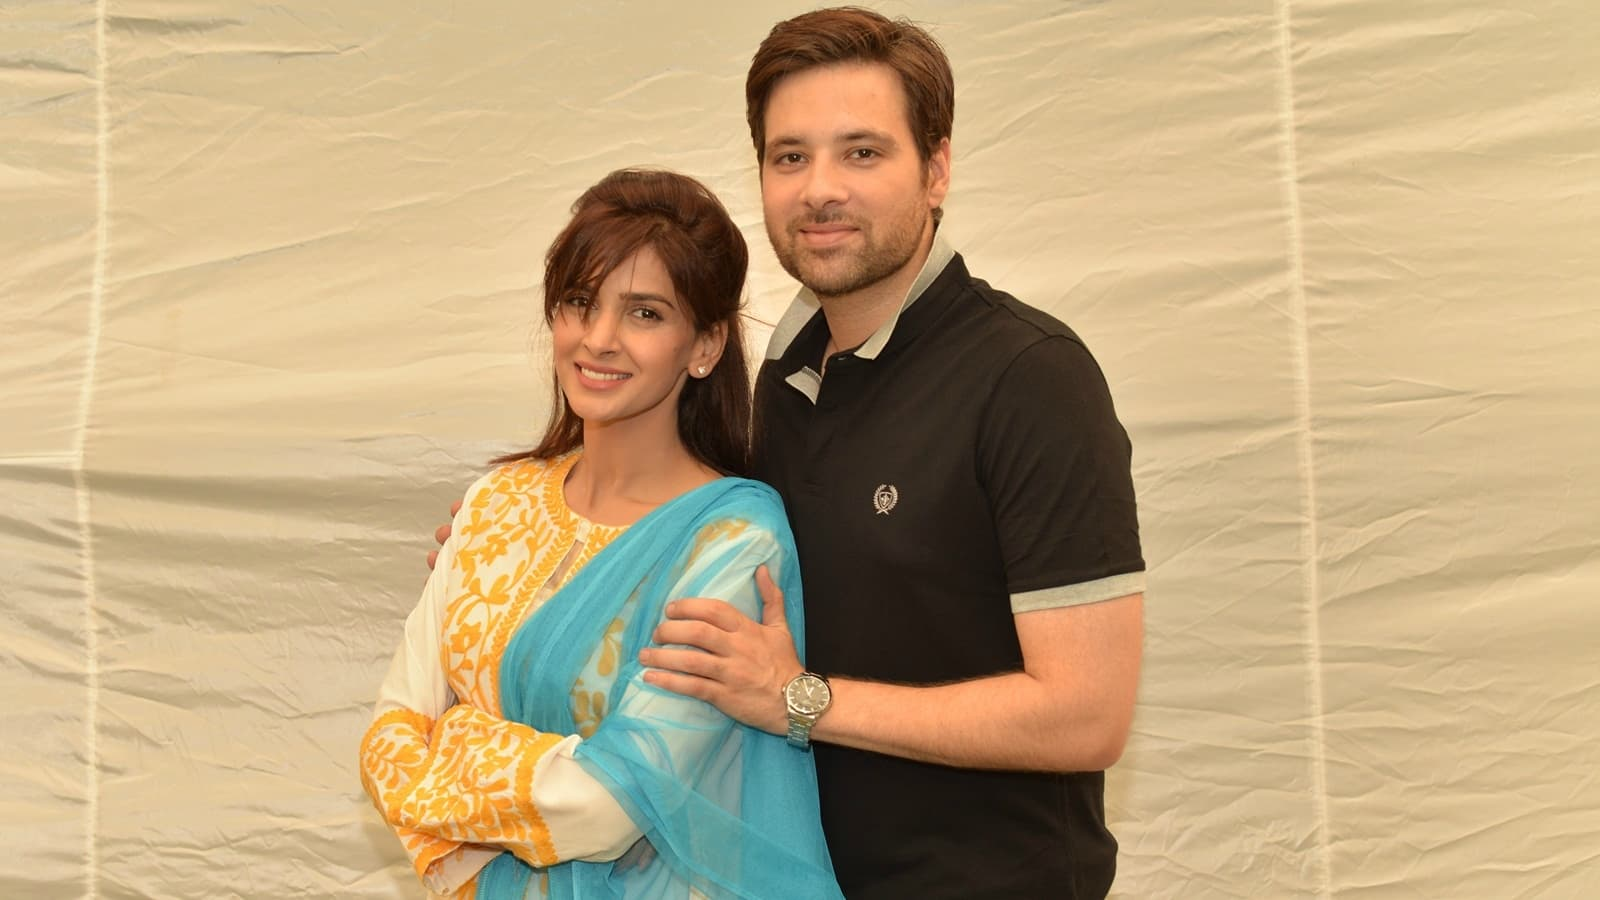 The happily wedded couple of Sangat - Ashy and Adnan - see their life turn upside down - Publicity photo